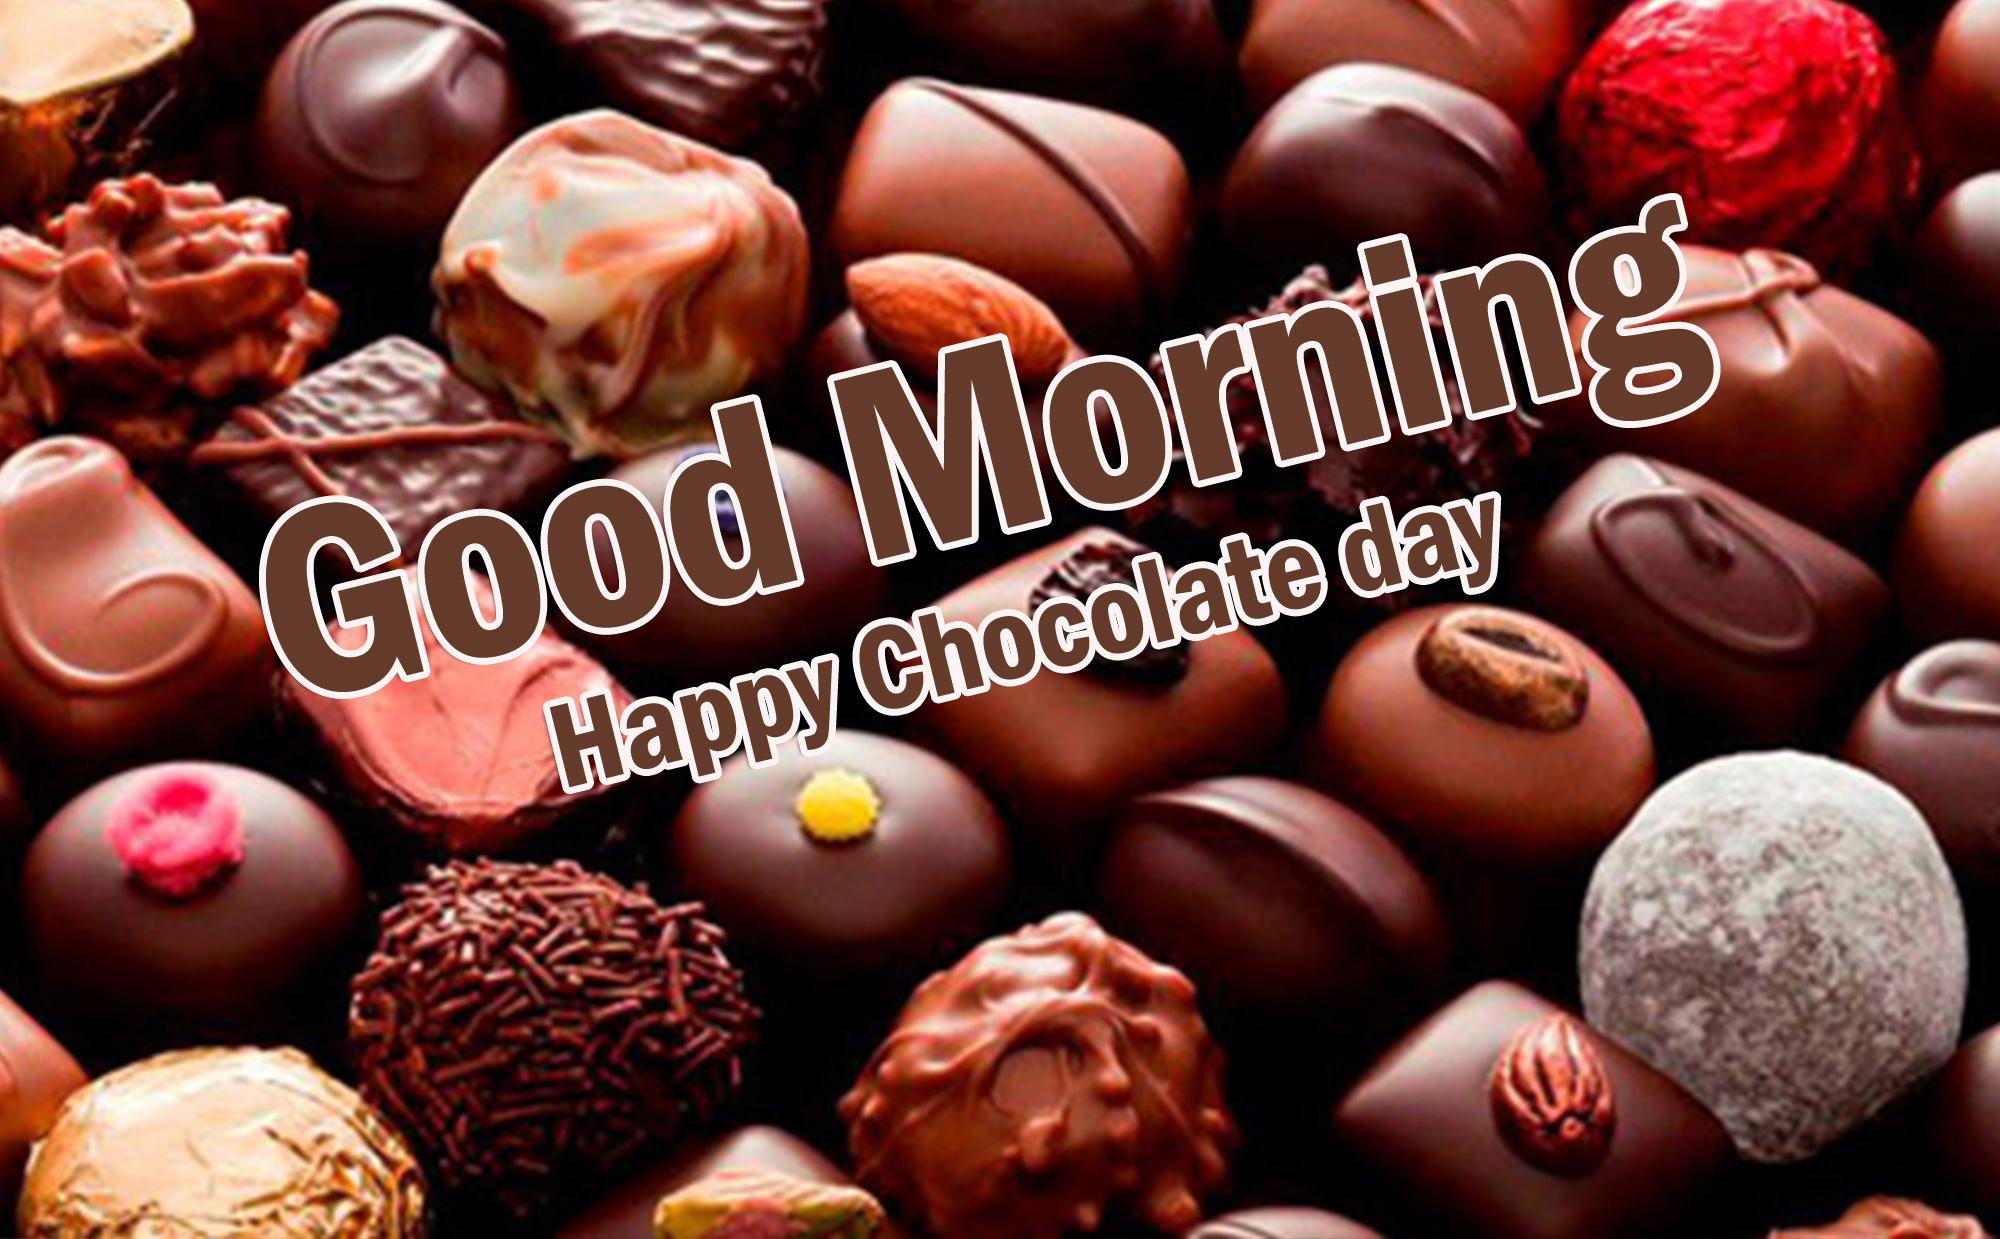 Chocolate Day Good Morning Pics FOR fACEBPOOK